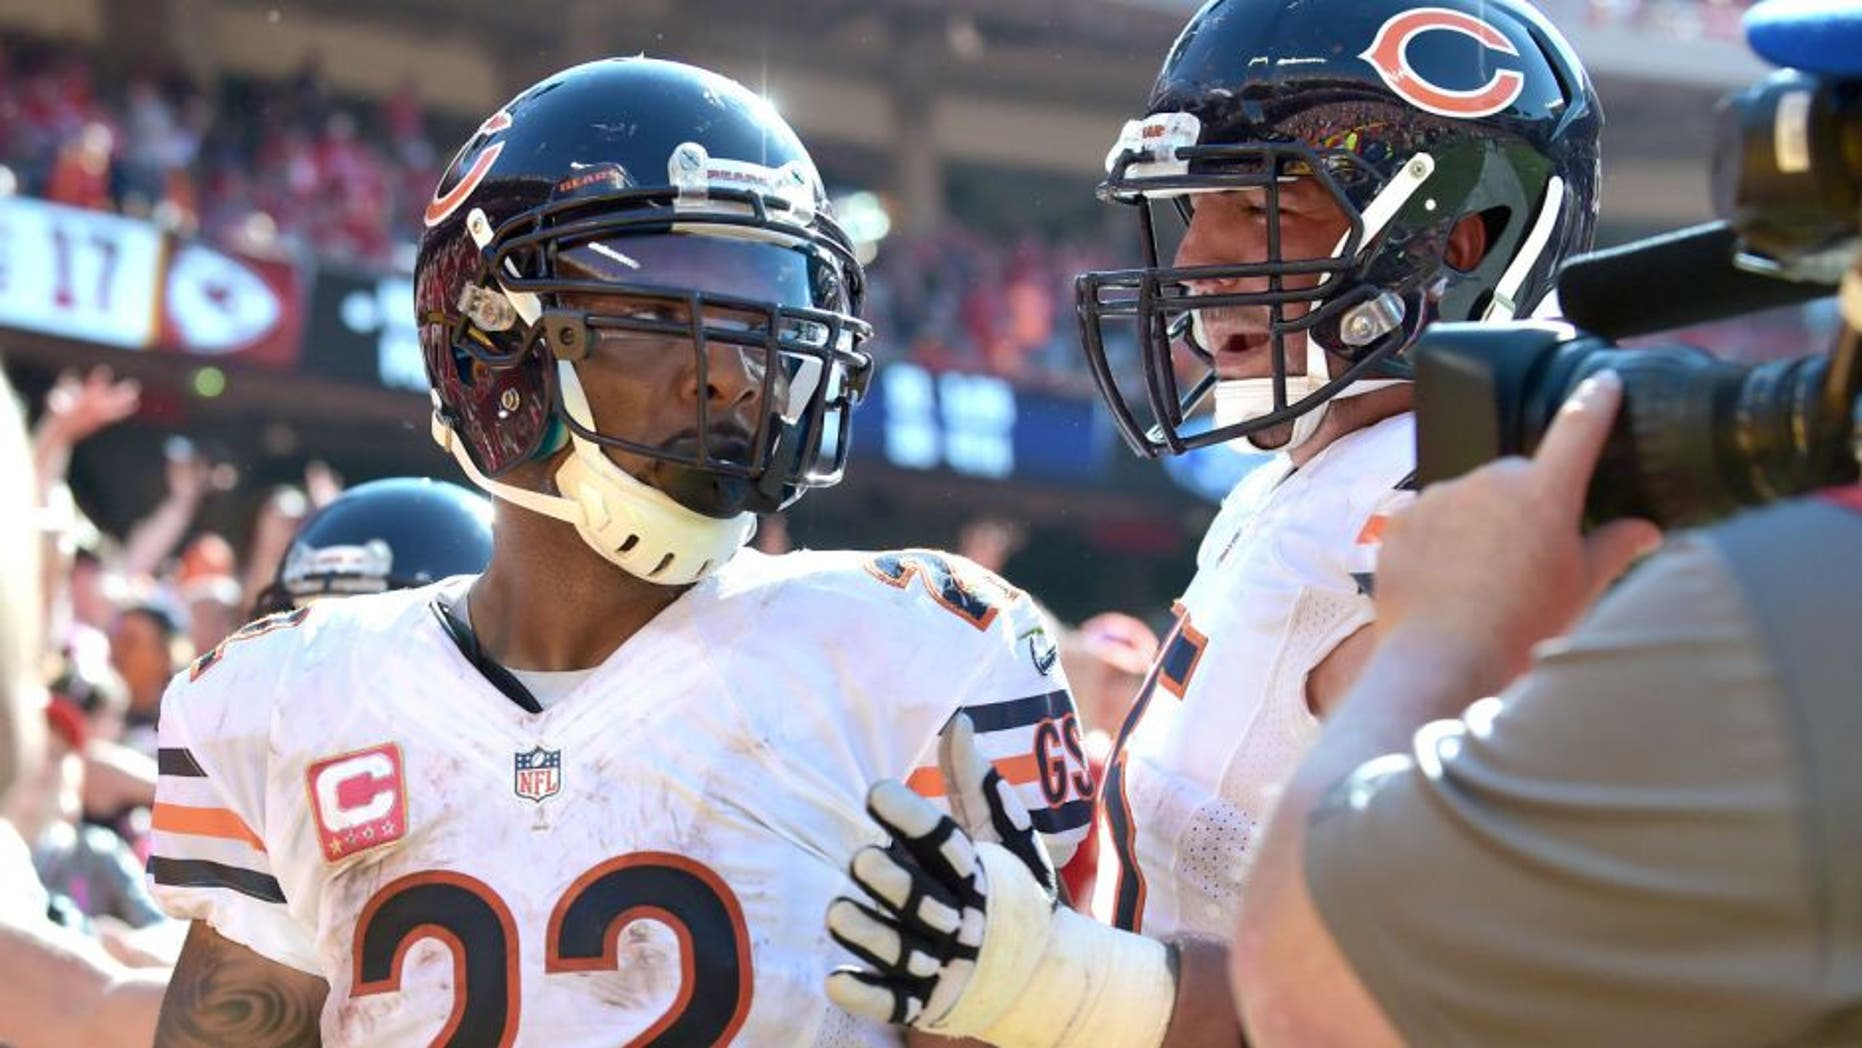 Oct 11, 2015; Kansas City, MO, USA; Chicago Bears running back Matt Forte (22) is congratulated by tackle Charles Leno (72) after scoring the winning touchdown during the second half against the Kansas City Chiefs at Arrowhead Stadium. The Bears won 18-17. Mandatory Credit: Denny Medley-USA TODAY Sports